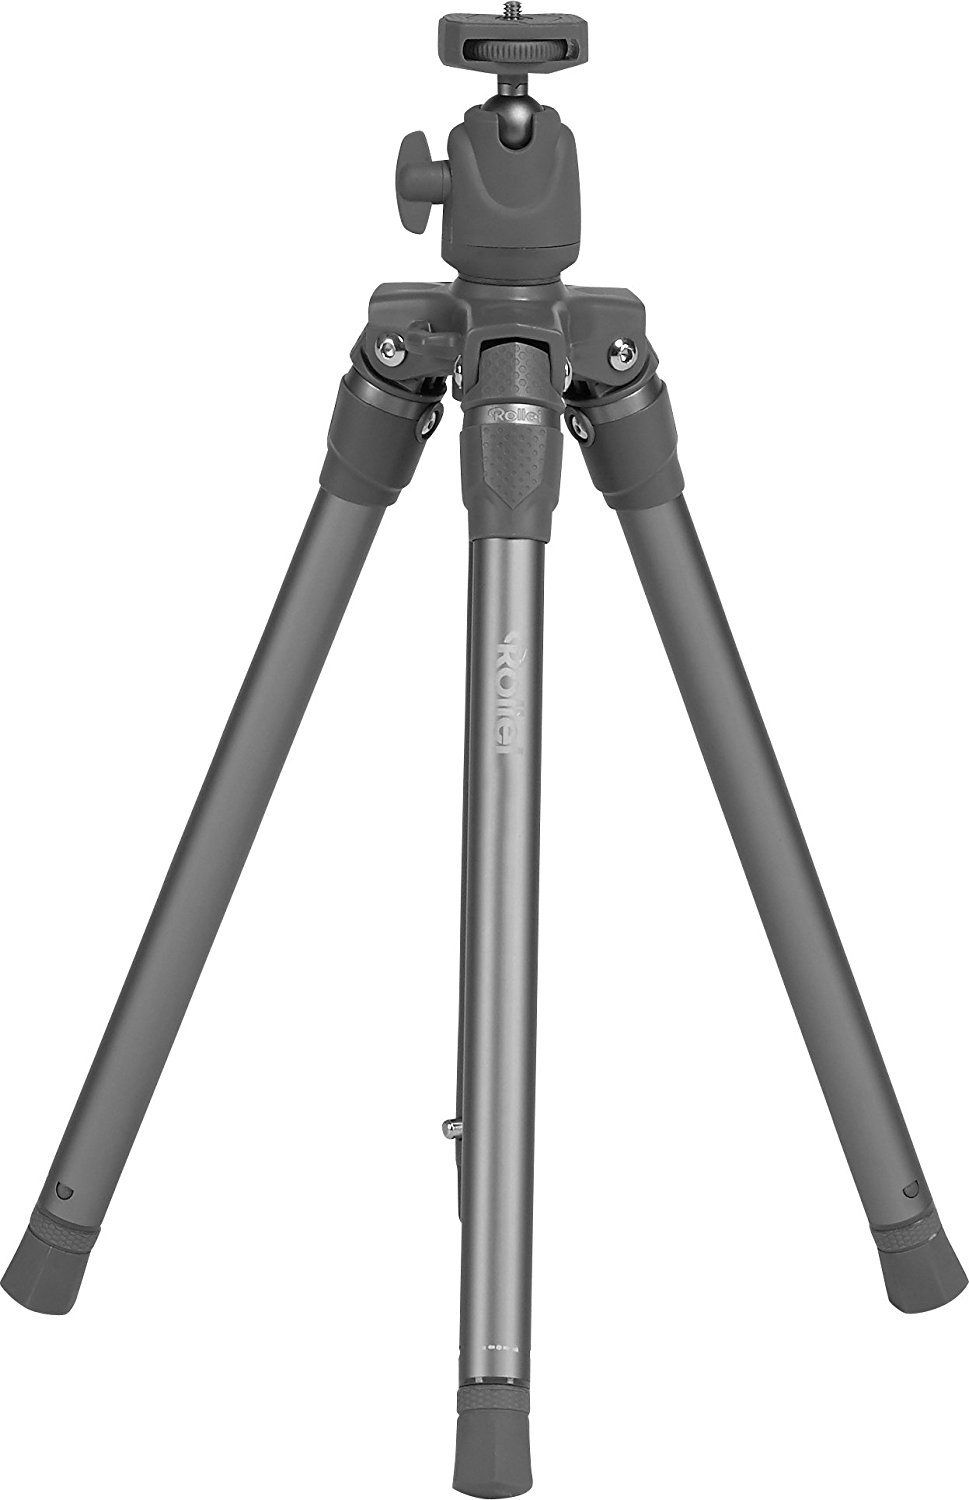 Cheap Best Compact Travel Tripod Find Best Compact Travel Tripod